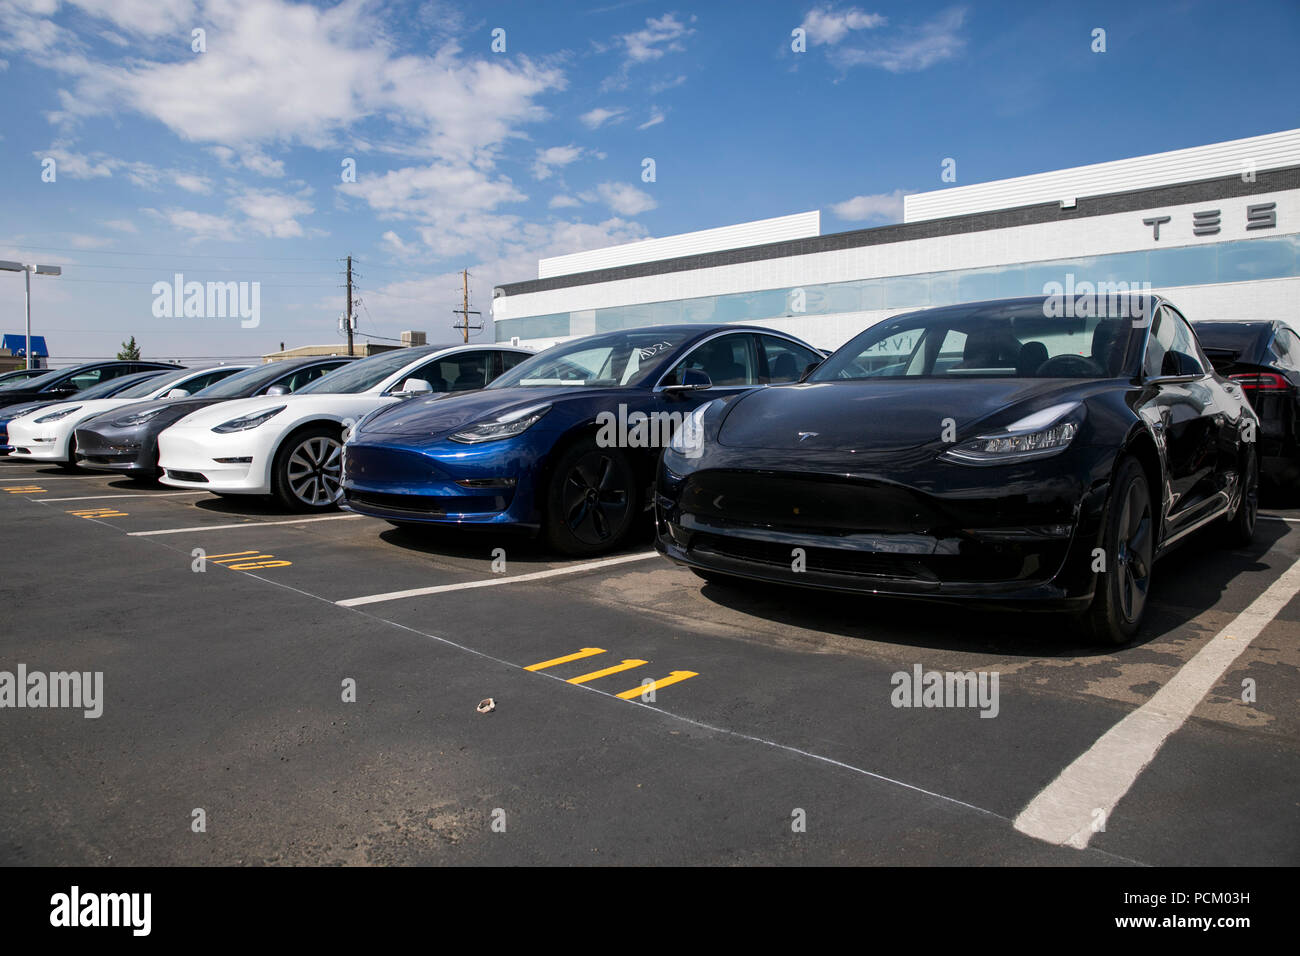 Tesla Model 3 electric vehicles at a Tesla Store location in Littleton, Colorado, on July 22, 2018. - Stock Image